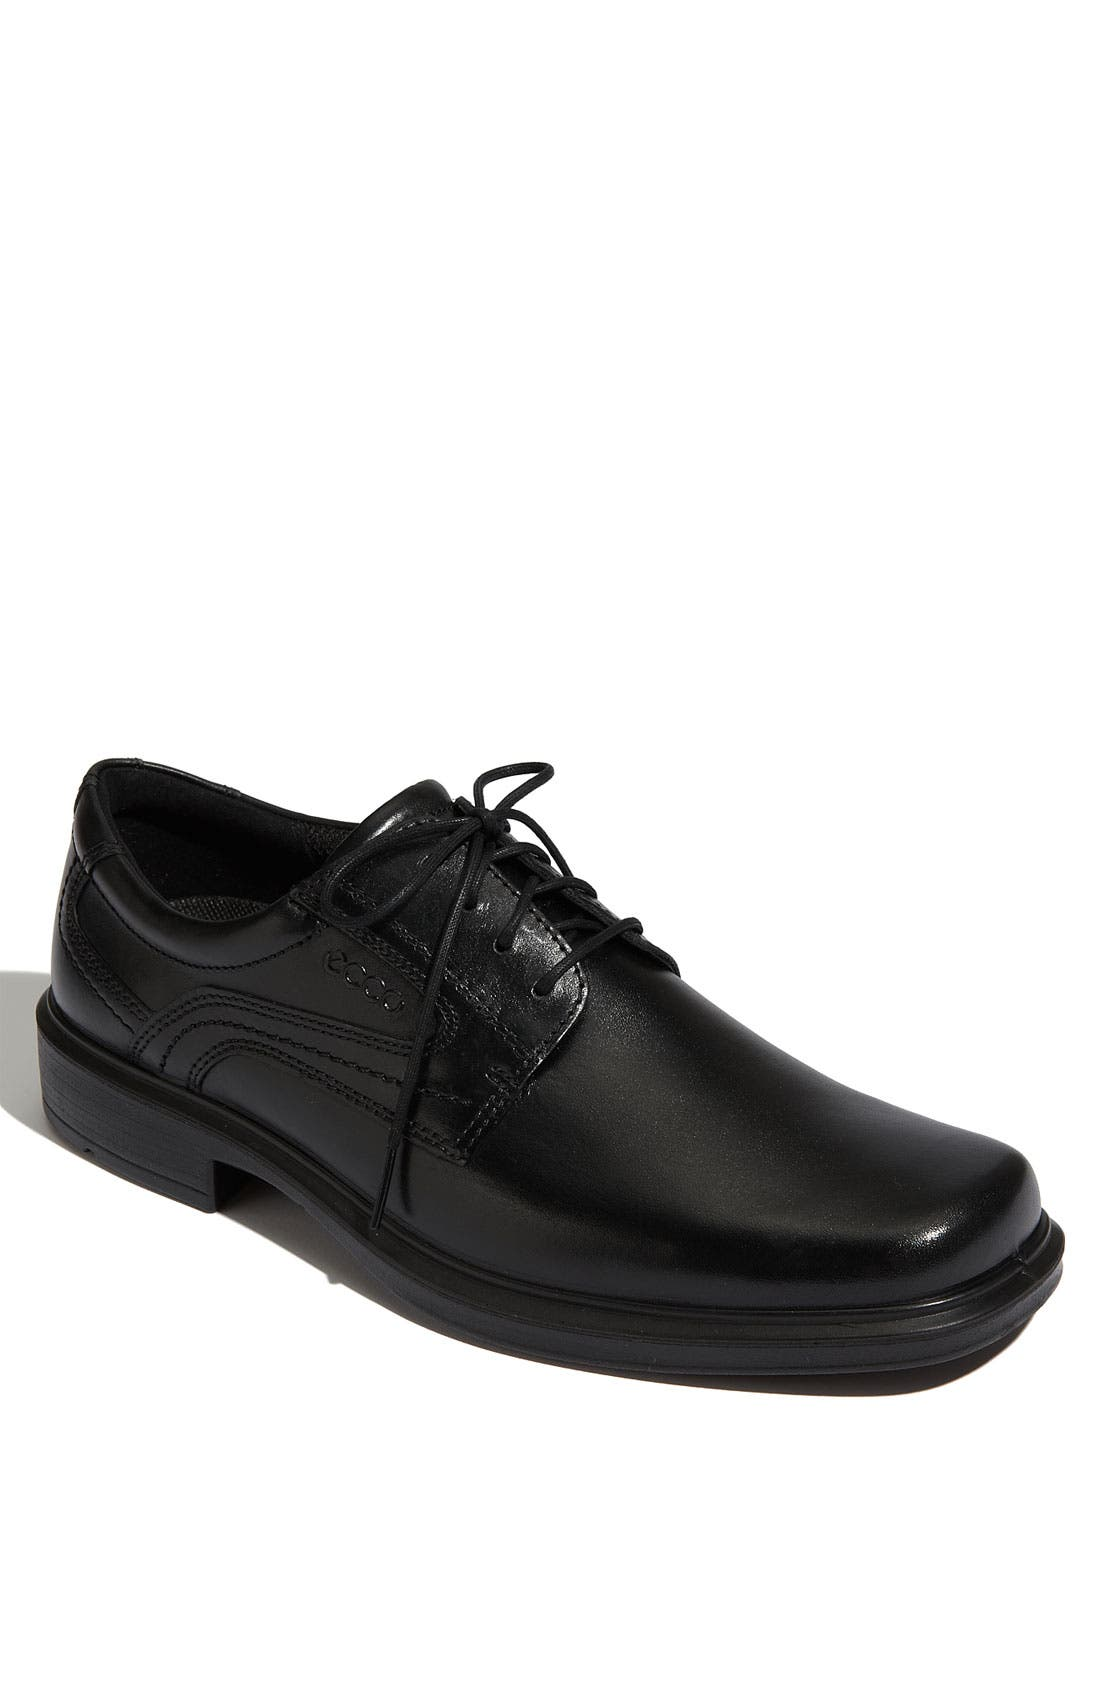 ECCO 'Helsinki' Plain Toe Oxford (Men)